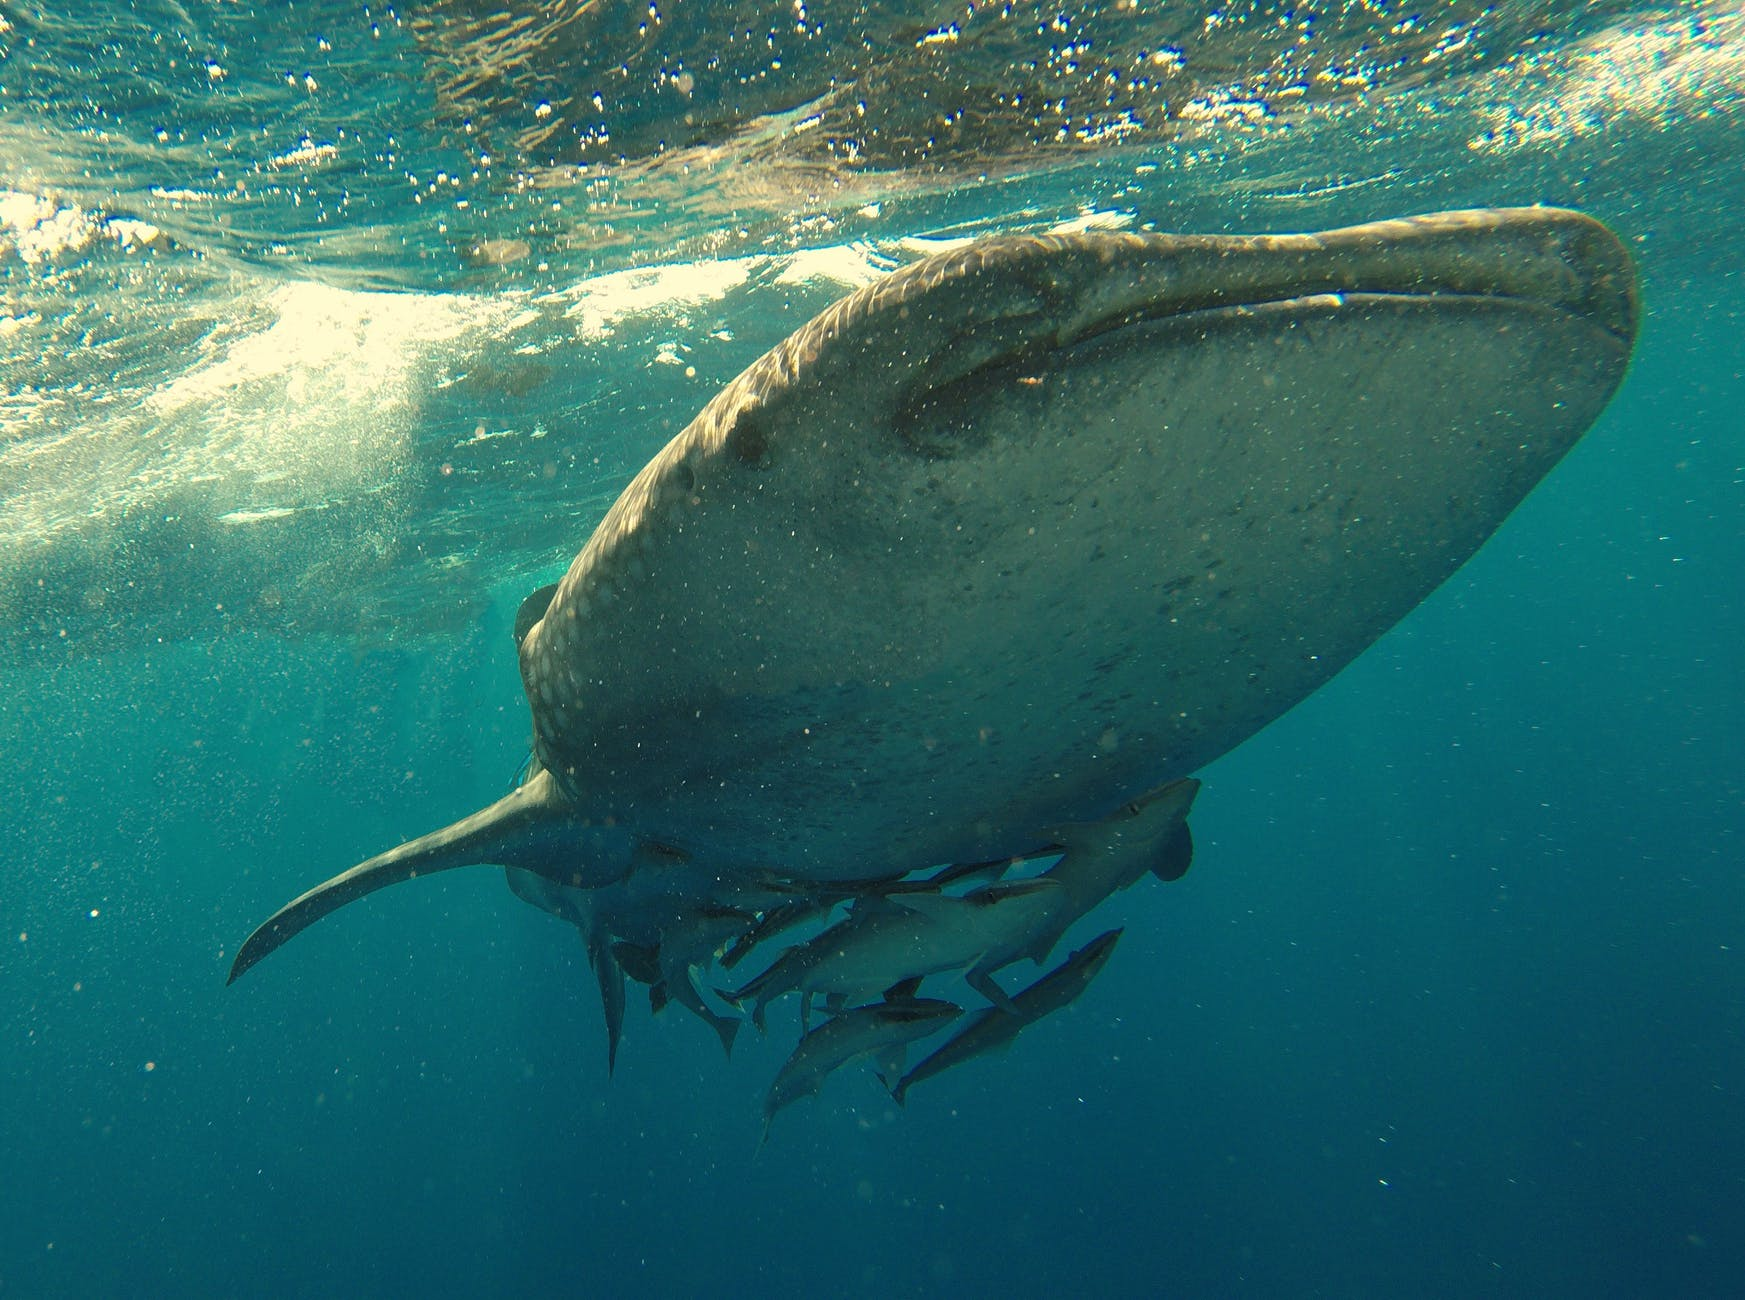 Photo of a humpback whale underwater